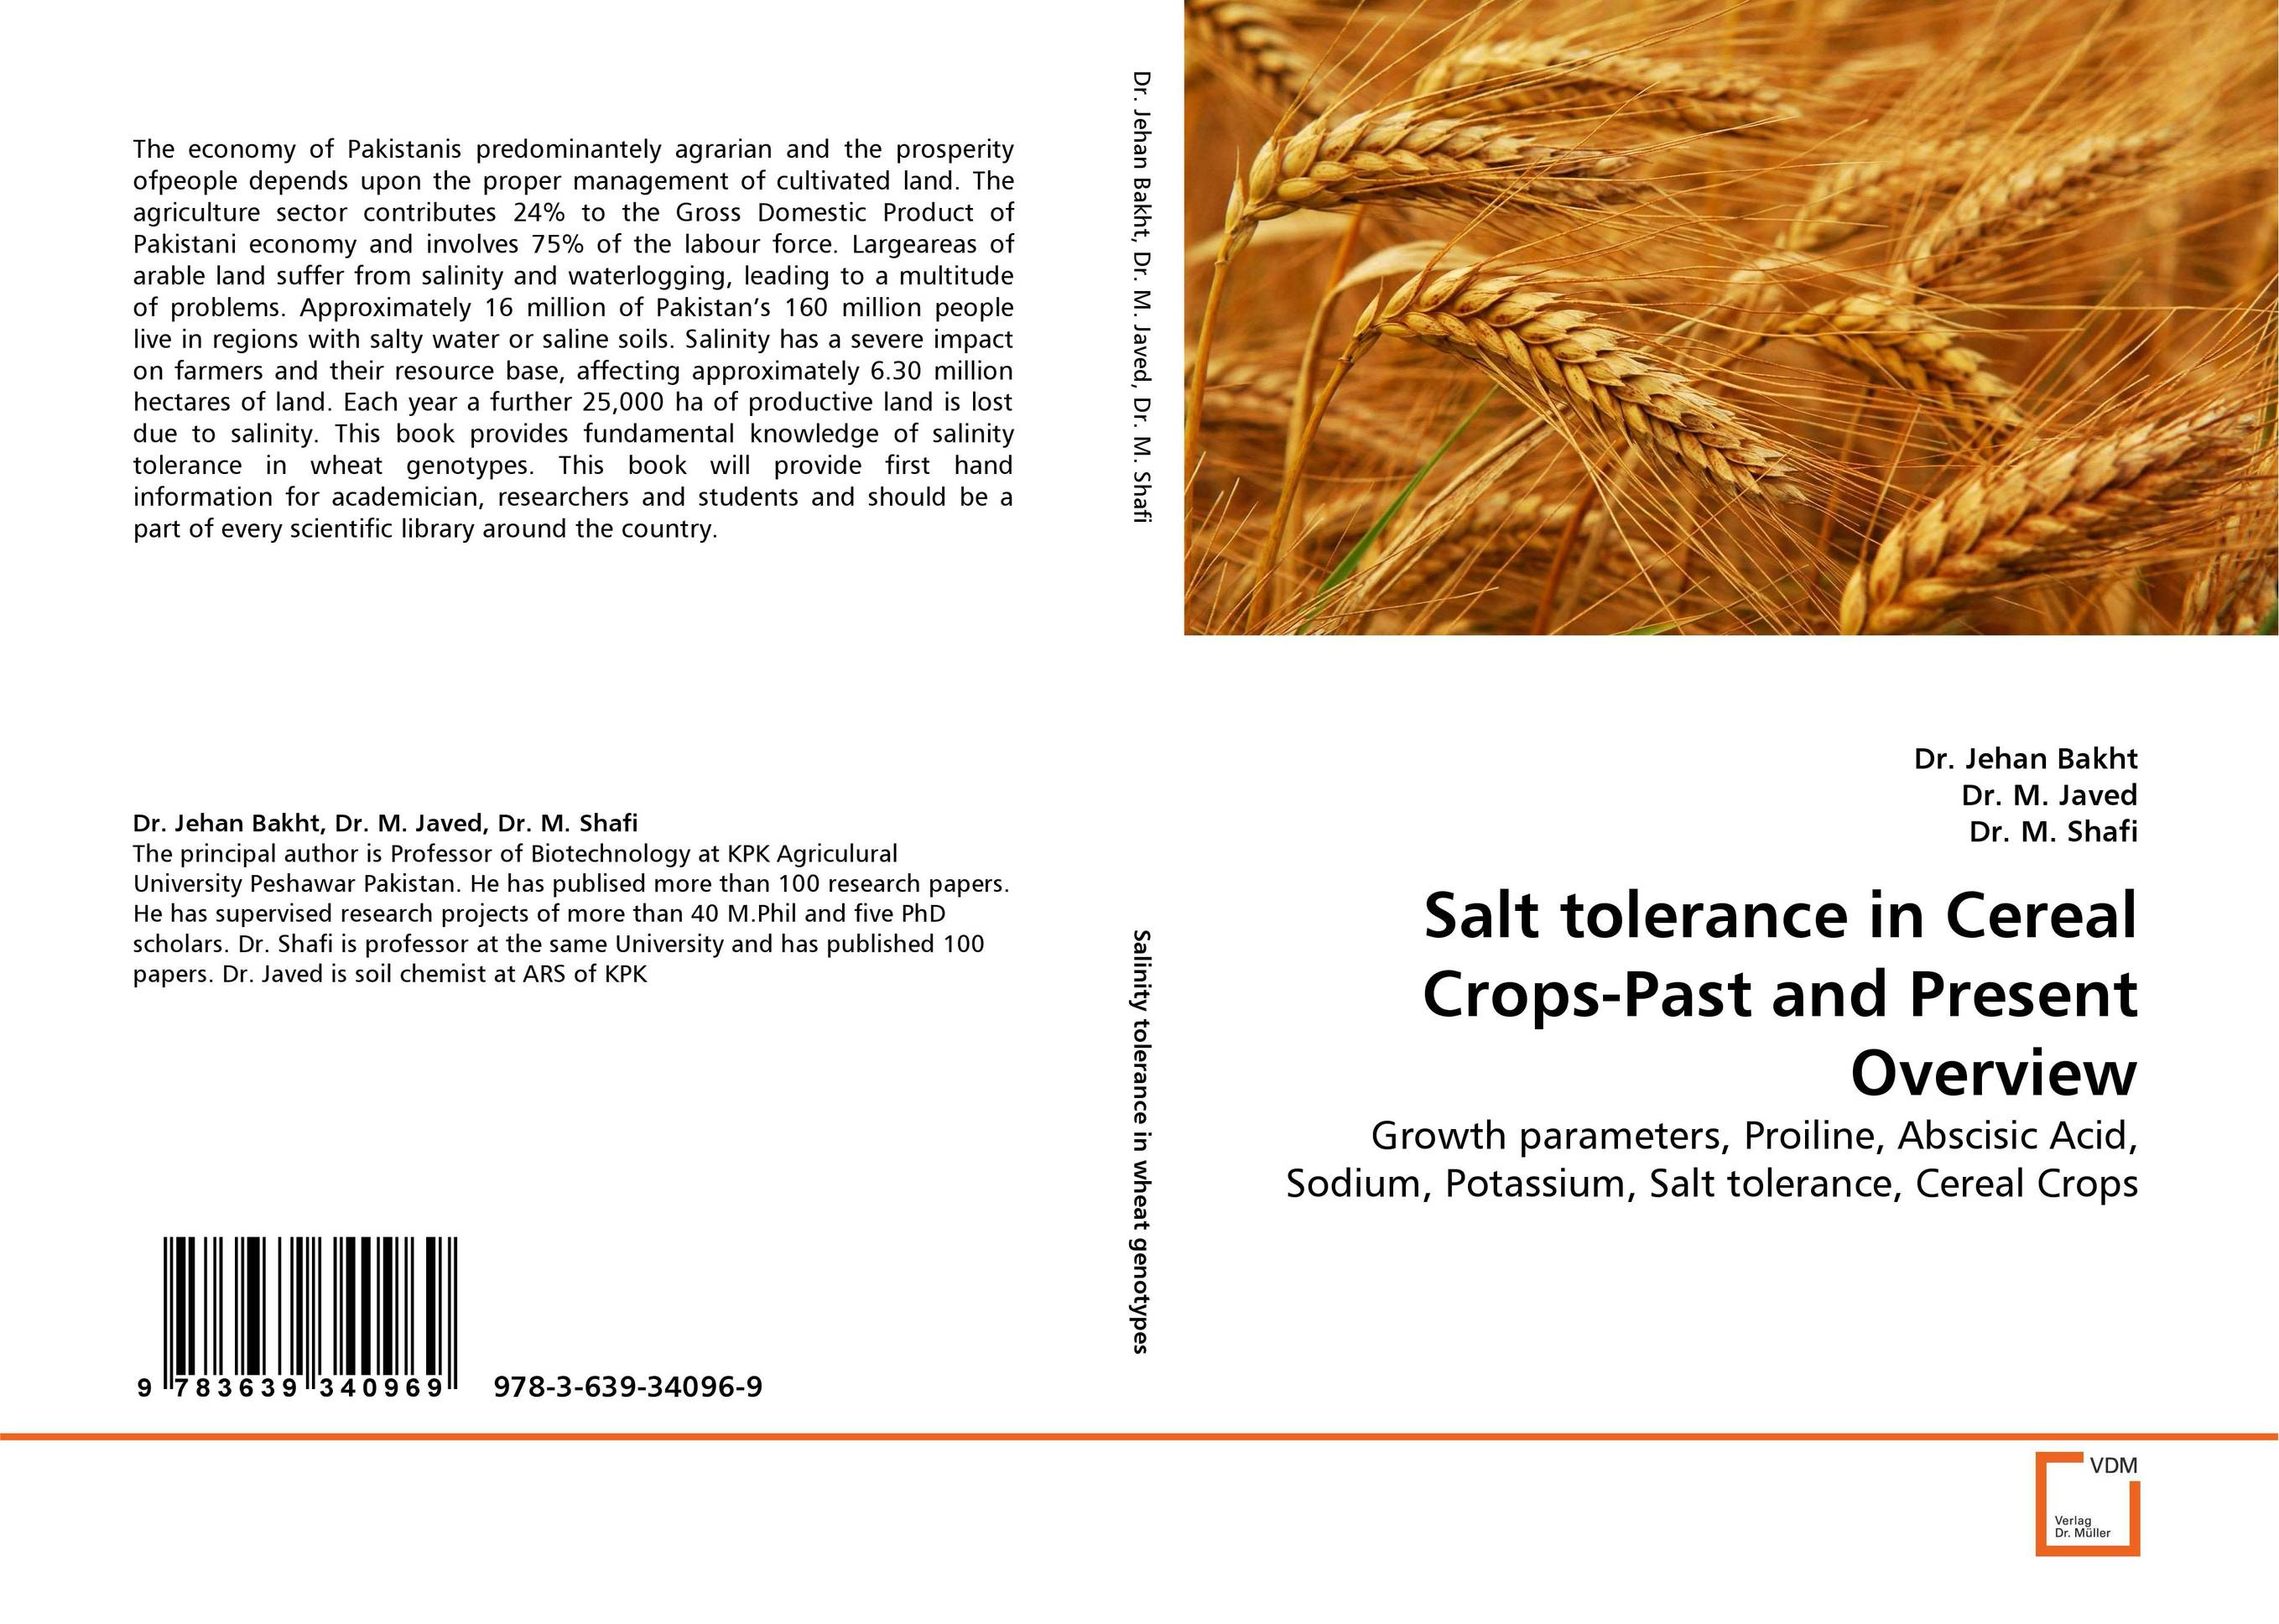 Salt tolerance in Cereal Crops-Past and Present Overview land of savagery land of promise – the european image of the american